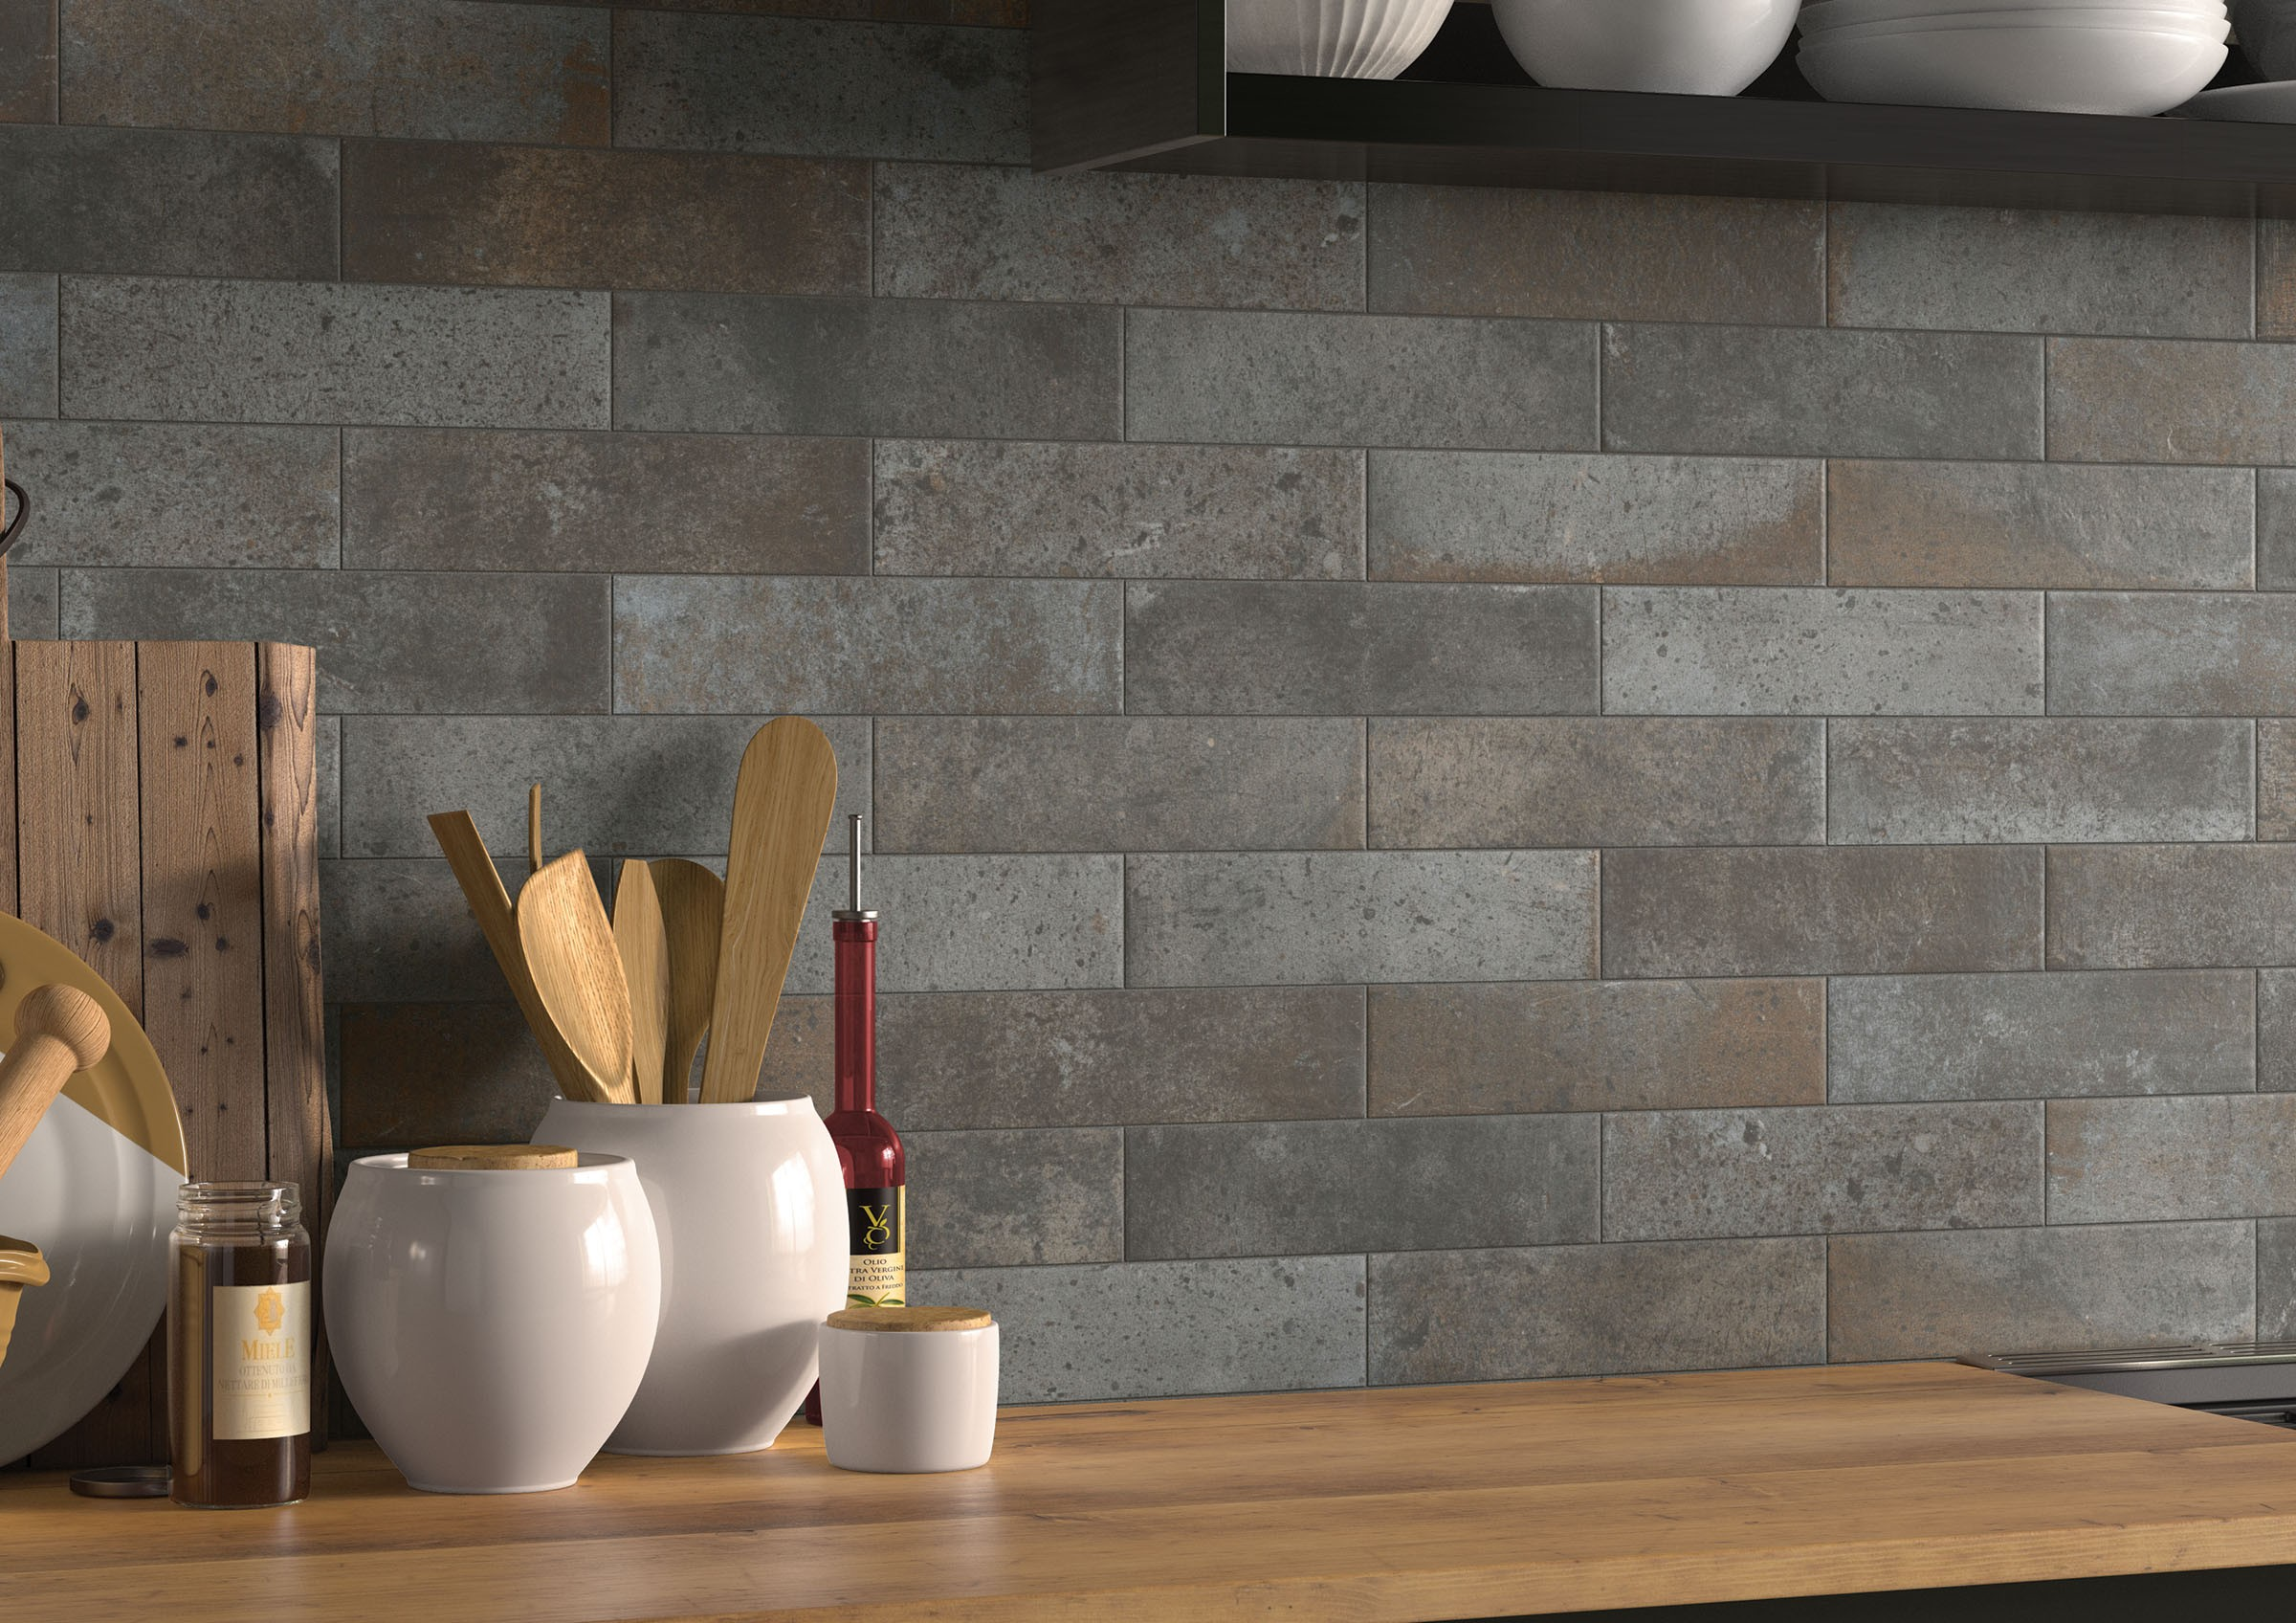 New Camargue. Best floor and wall tiles made with porcelain stoneware and